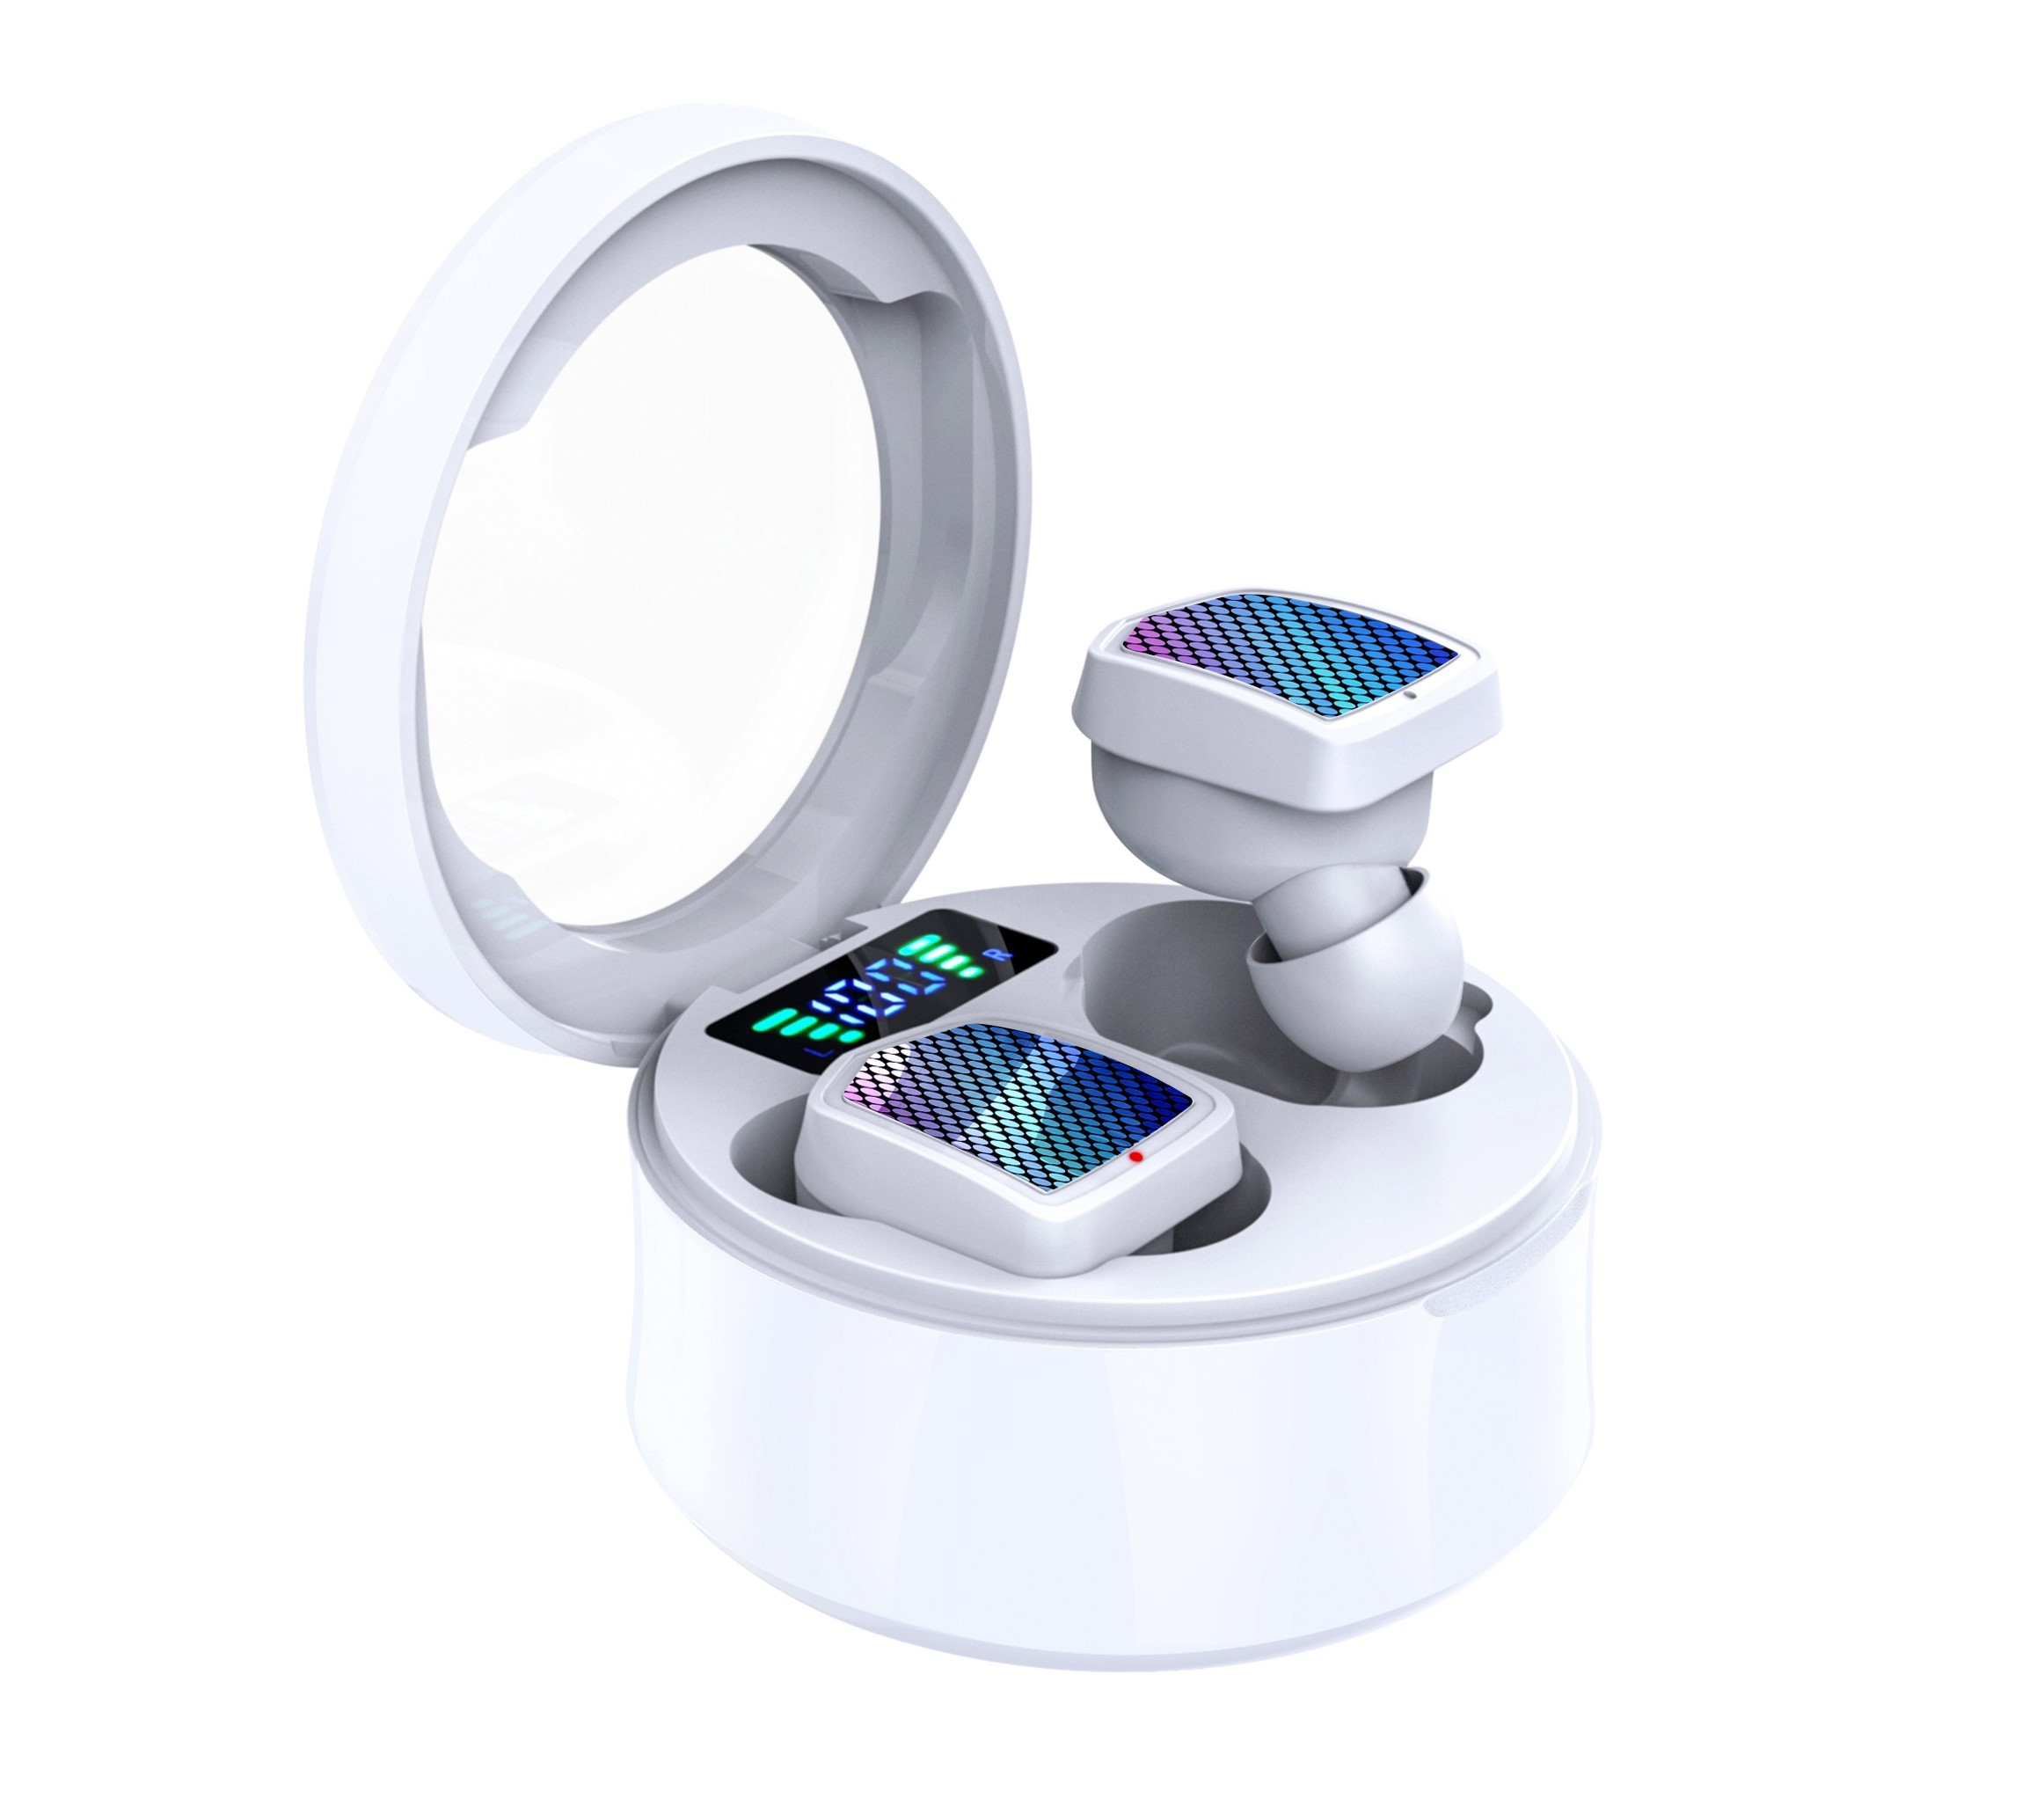 Casti Smart Techstar® TWS S30, Wireless, Bluetooth V5.0, IPX6, HD Audio, Touch, iOS, Android, Type-C, Alb